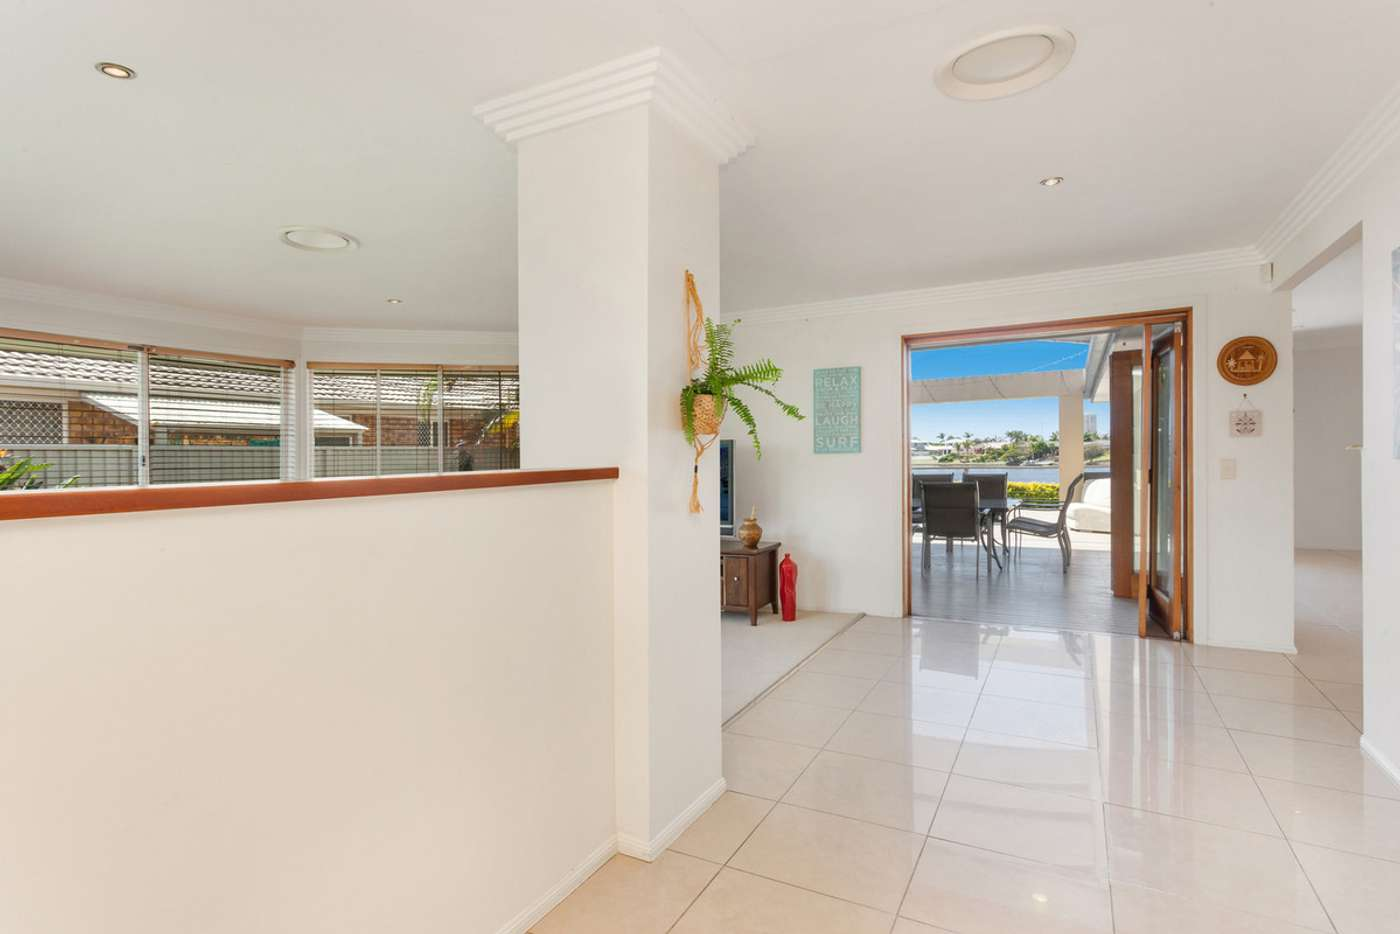 Sixth view of Homely house listing, 49 Cassowary Drive, Burleigh Waters QLD 4220